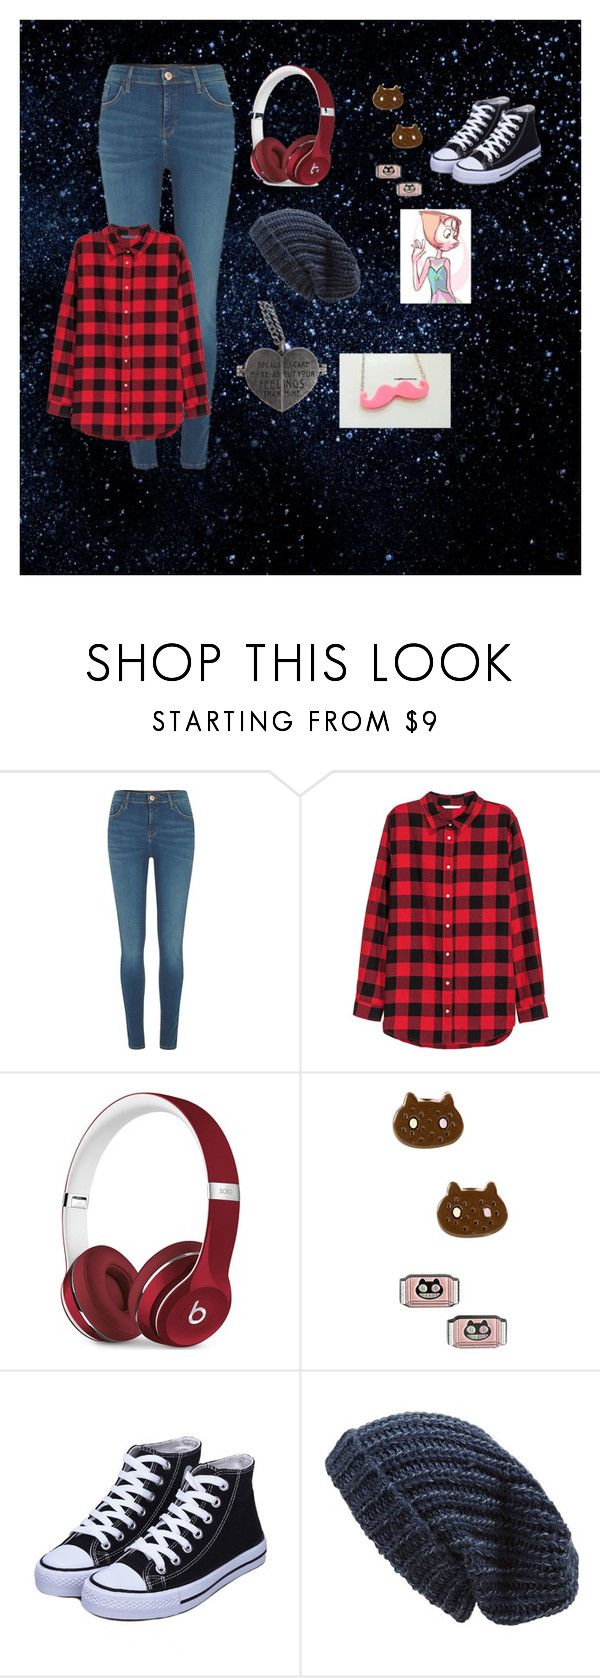 """Jaiden Smith #6"" by maya-fischbach on Polyvore featuring River Island, H&M, Beats by Dr. Dre, Cartoon Network and Phase 3"